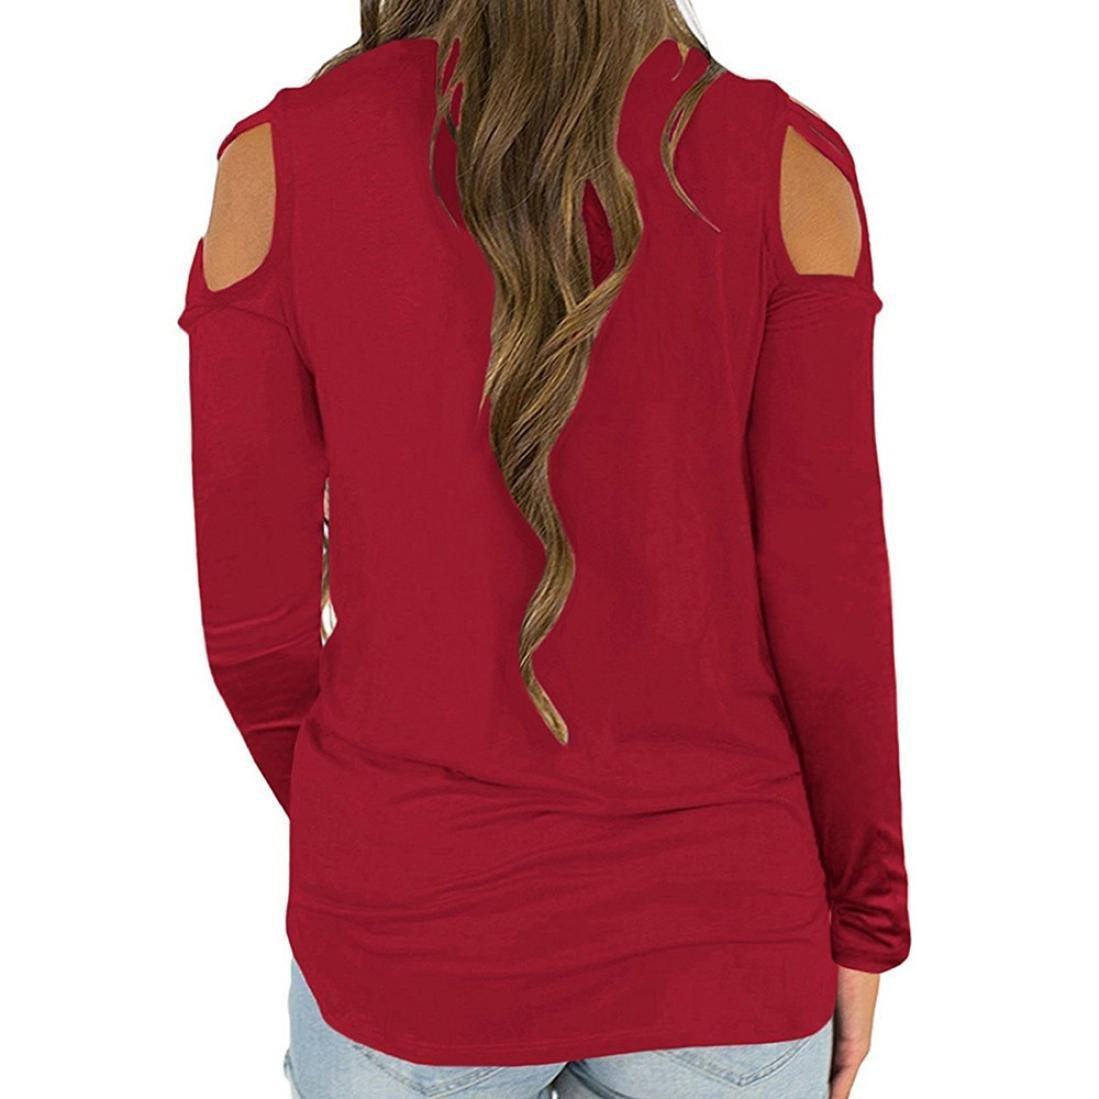 Amazon.com: Teresamoon Cold Shoulder Long Sleeve T Shirts O Neck Tops Casual Criss Cross Tunic Blouse: Arts, Crafts & Sewing